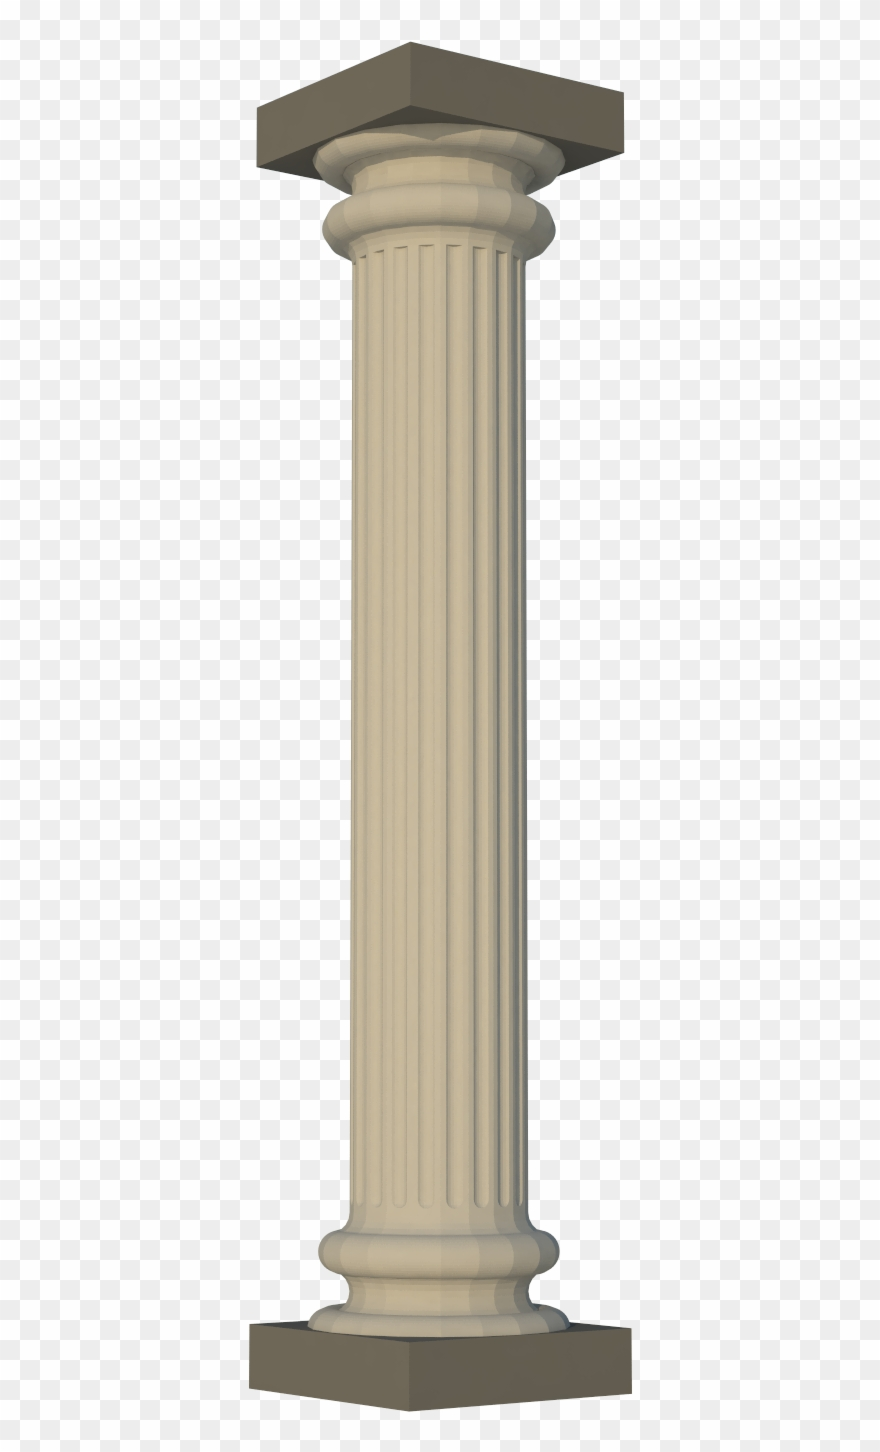 Pillar clipart graphic library stock Greek Pillar Dustynus Thingiverse Png Fancy Pillar ... graphic library stock